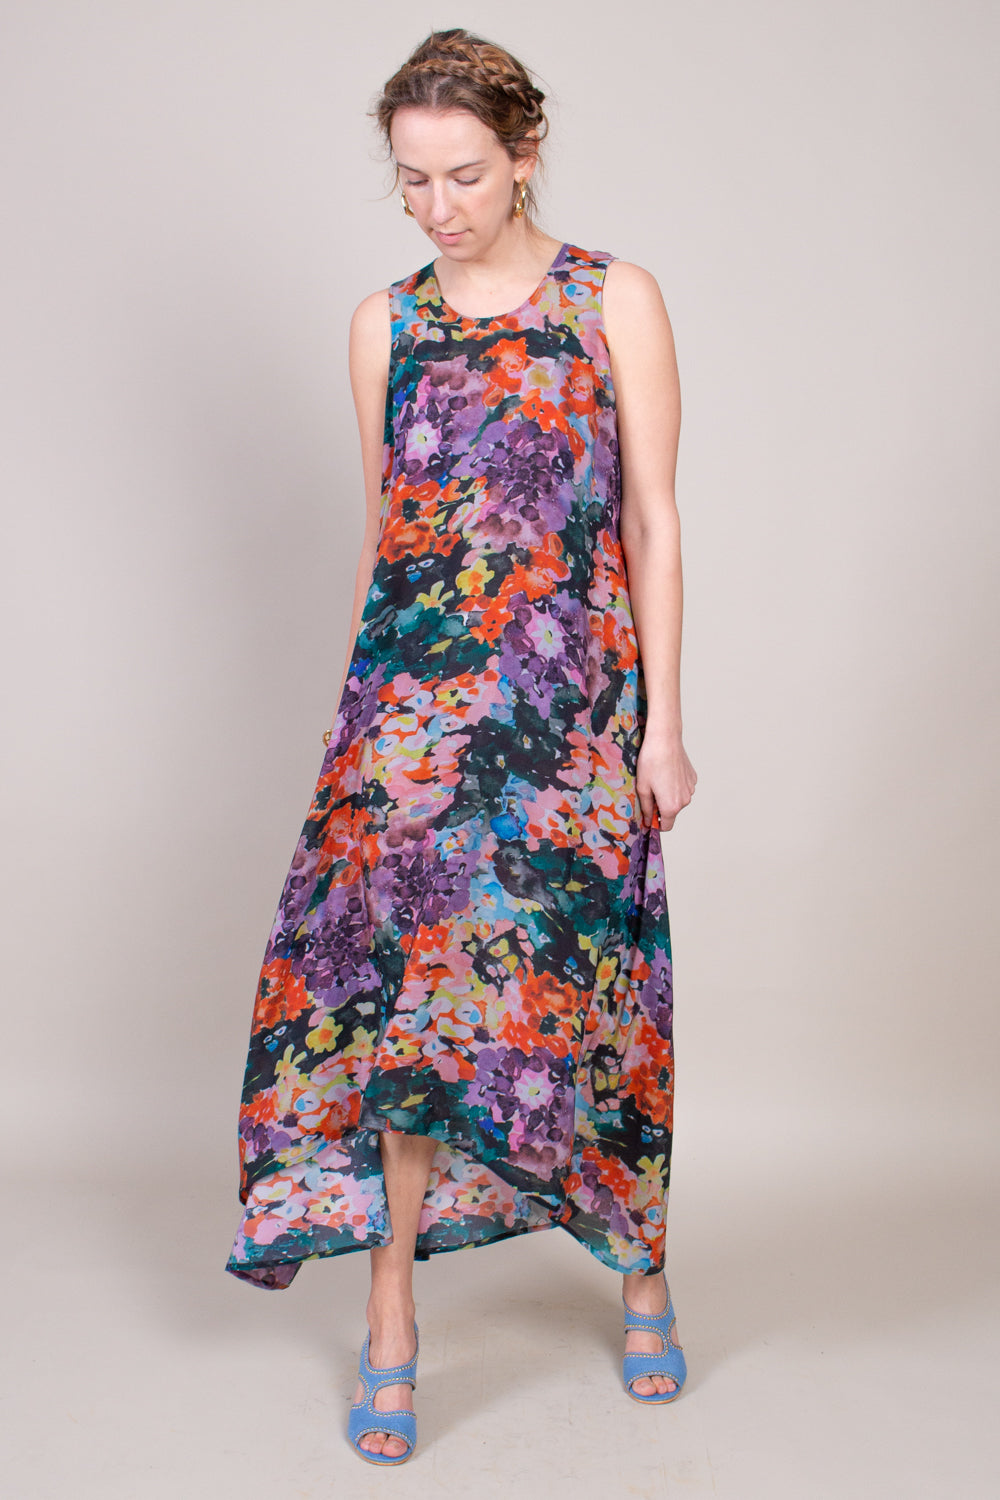 Anntian Dress in Flower Bouquet - Vert & Vogue